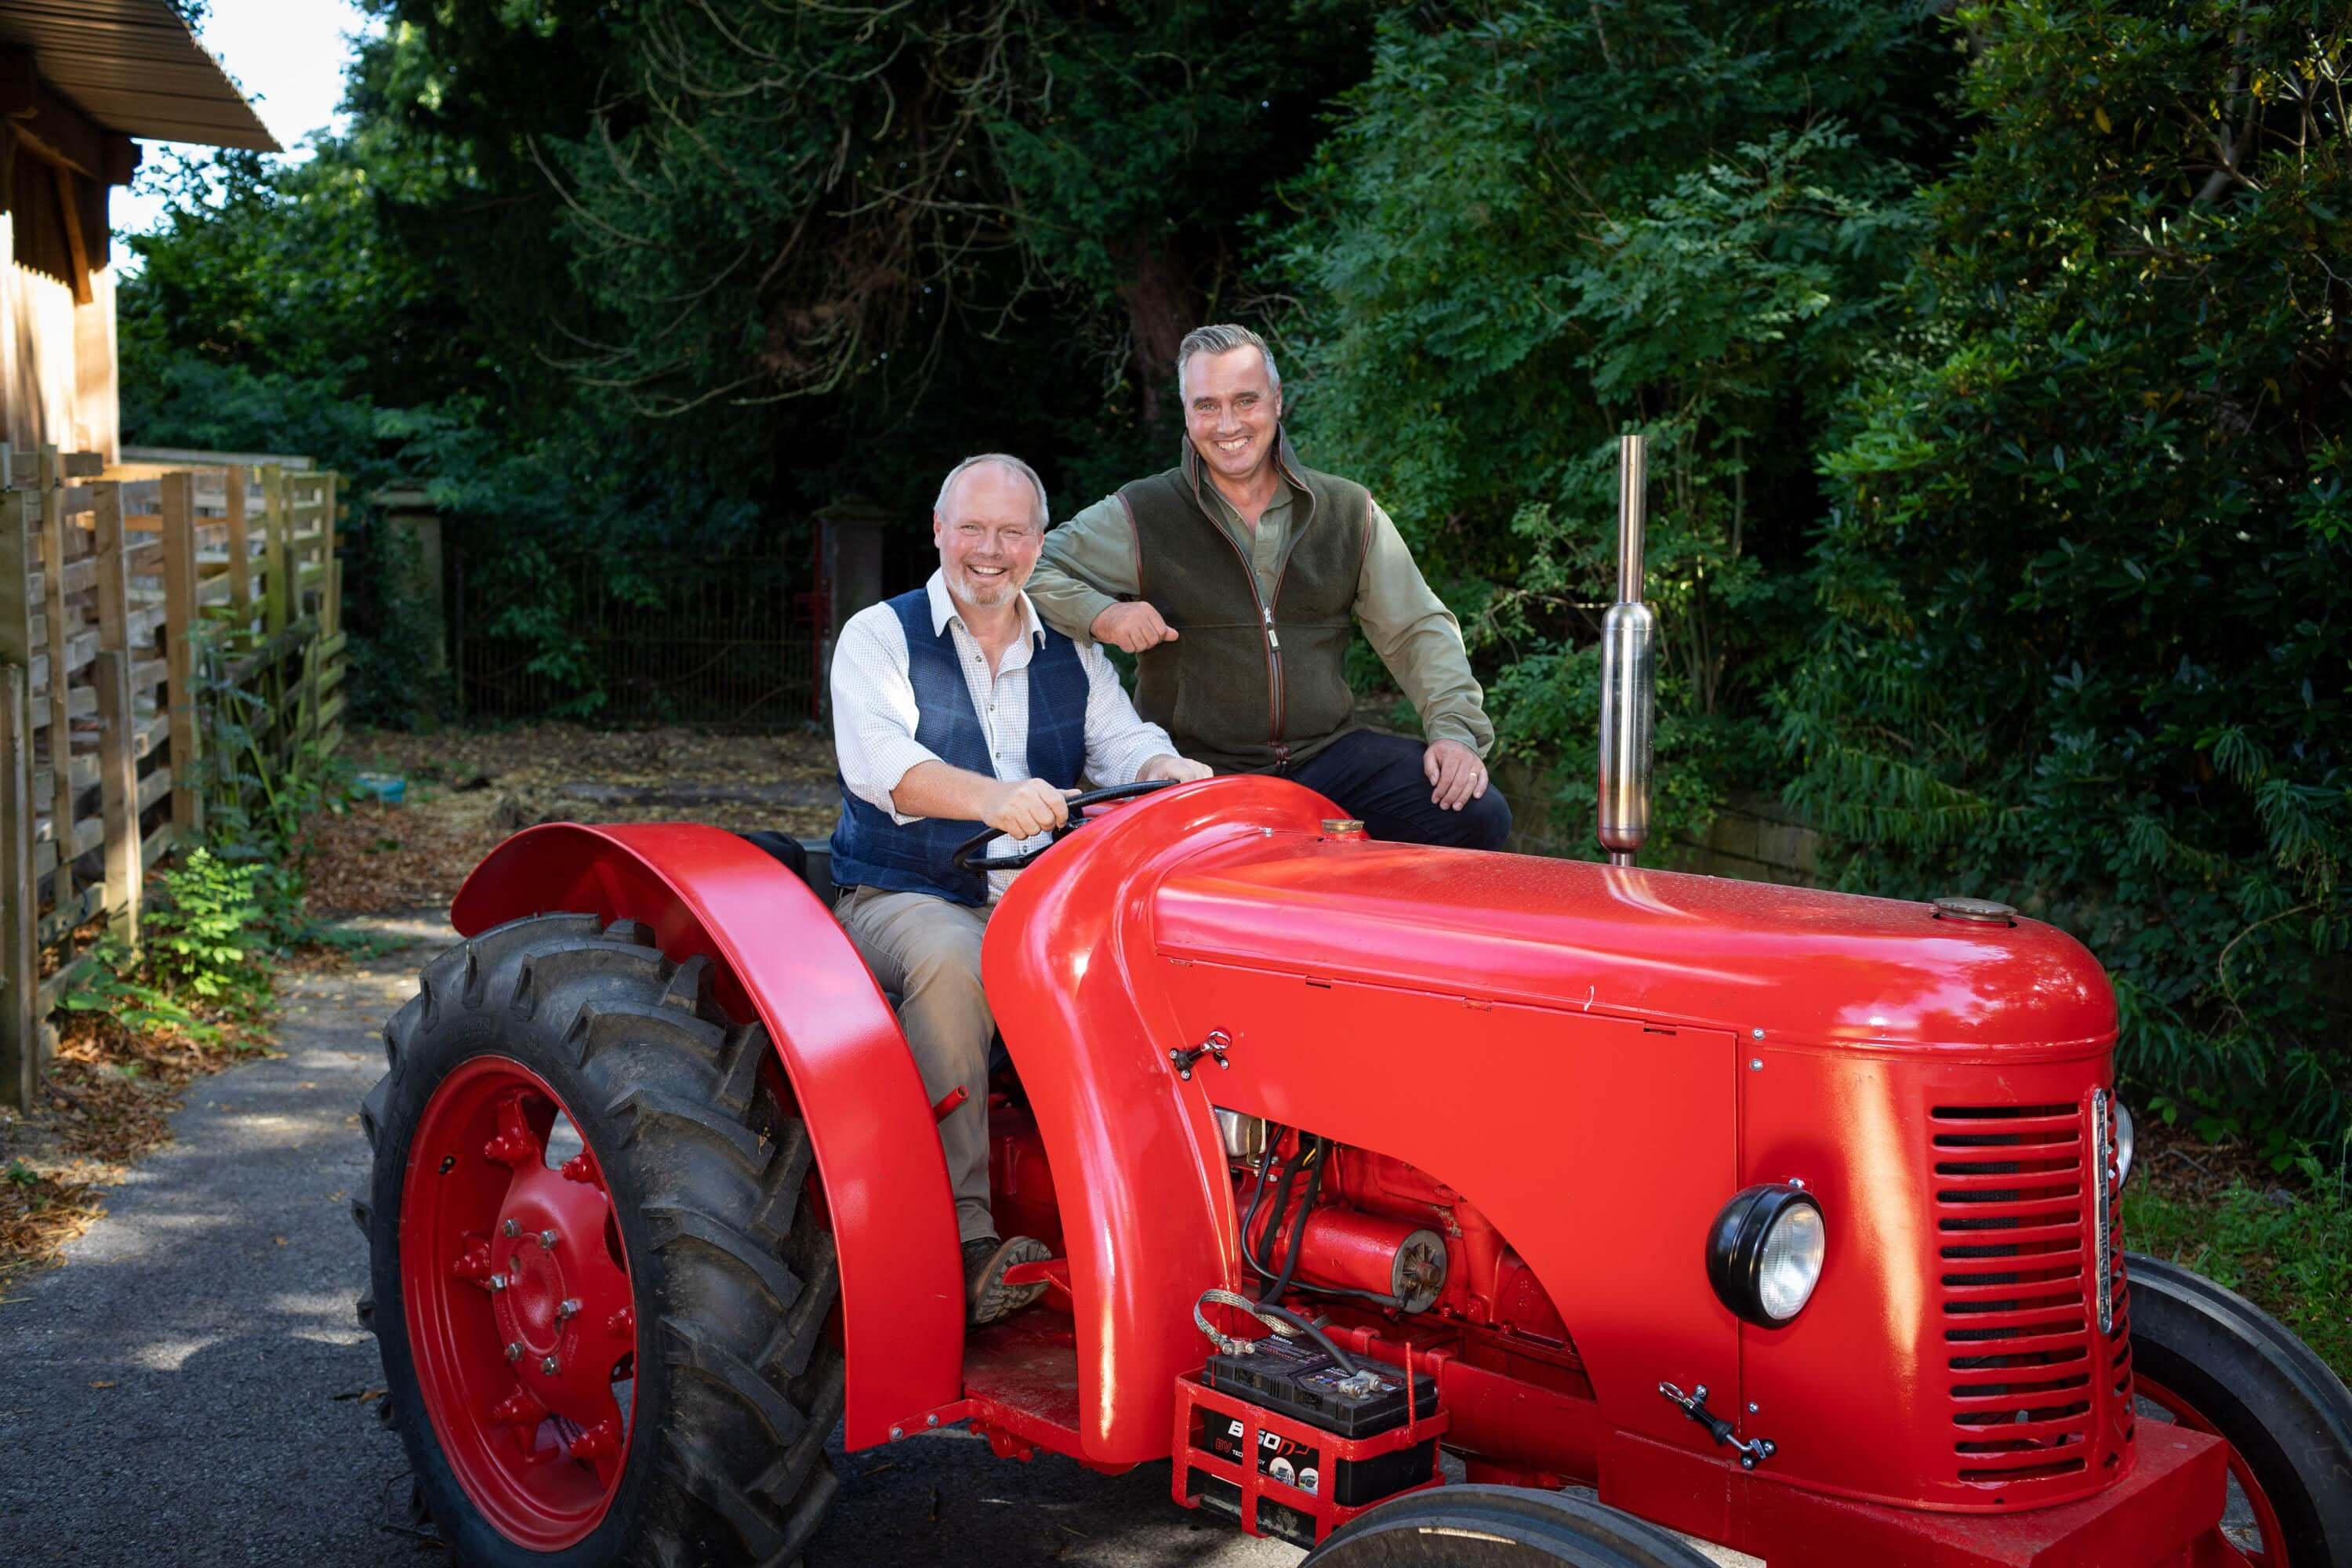 jules hudson on a tractor